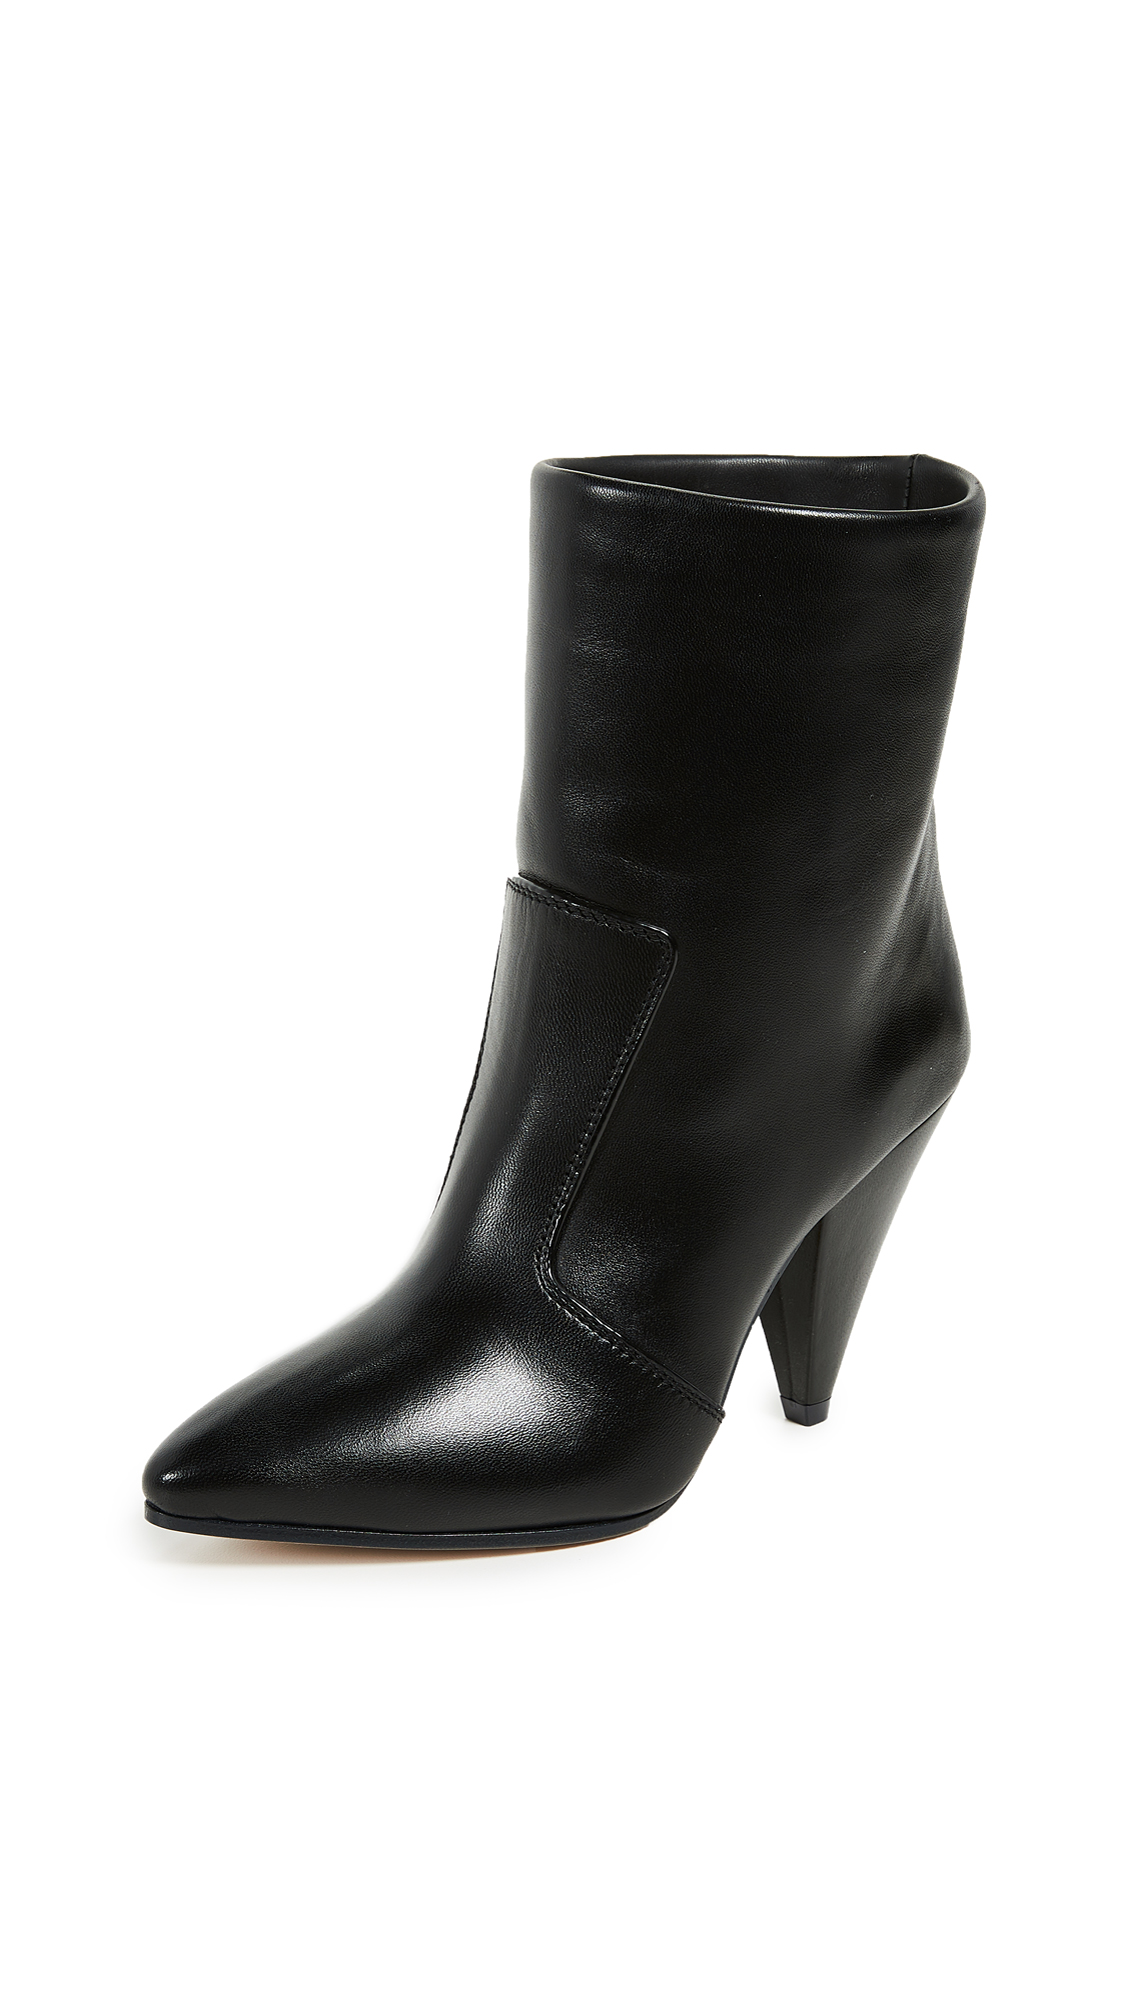 Stuart Weitzman Atomic West Booties - Jet